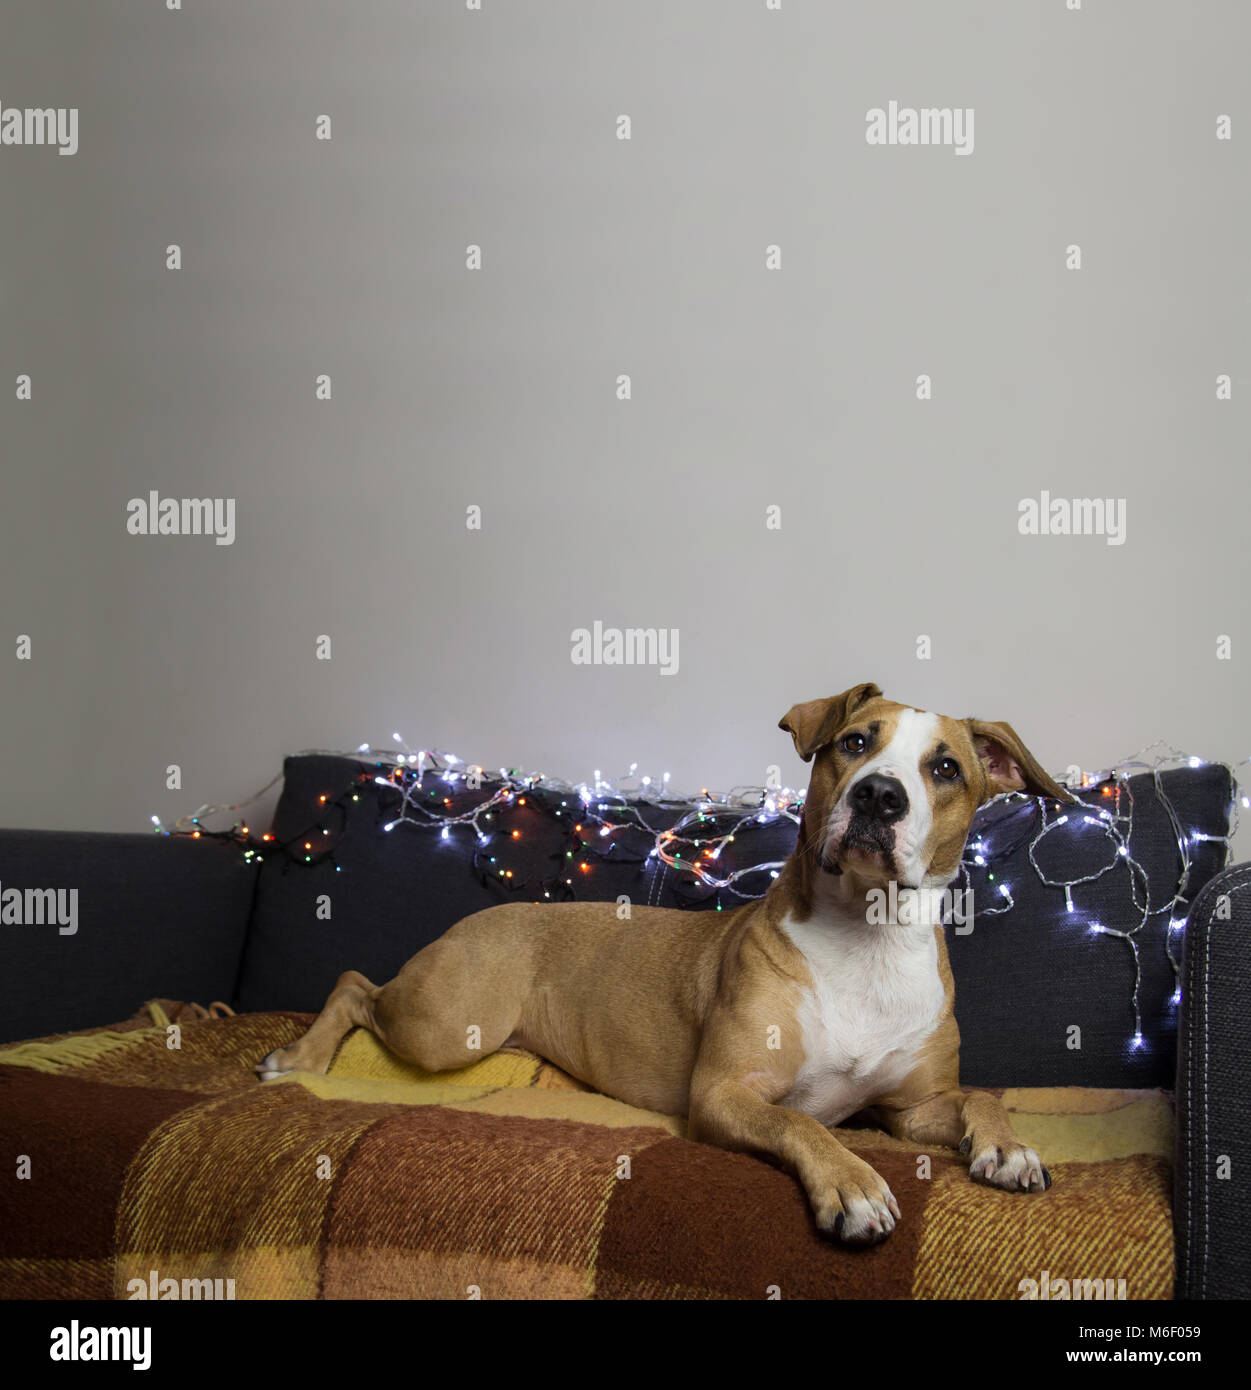 Surprised dog on couch in living room with christmas tree set and white wall - Stock Image